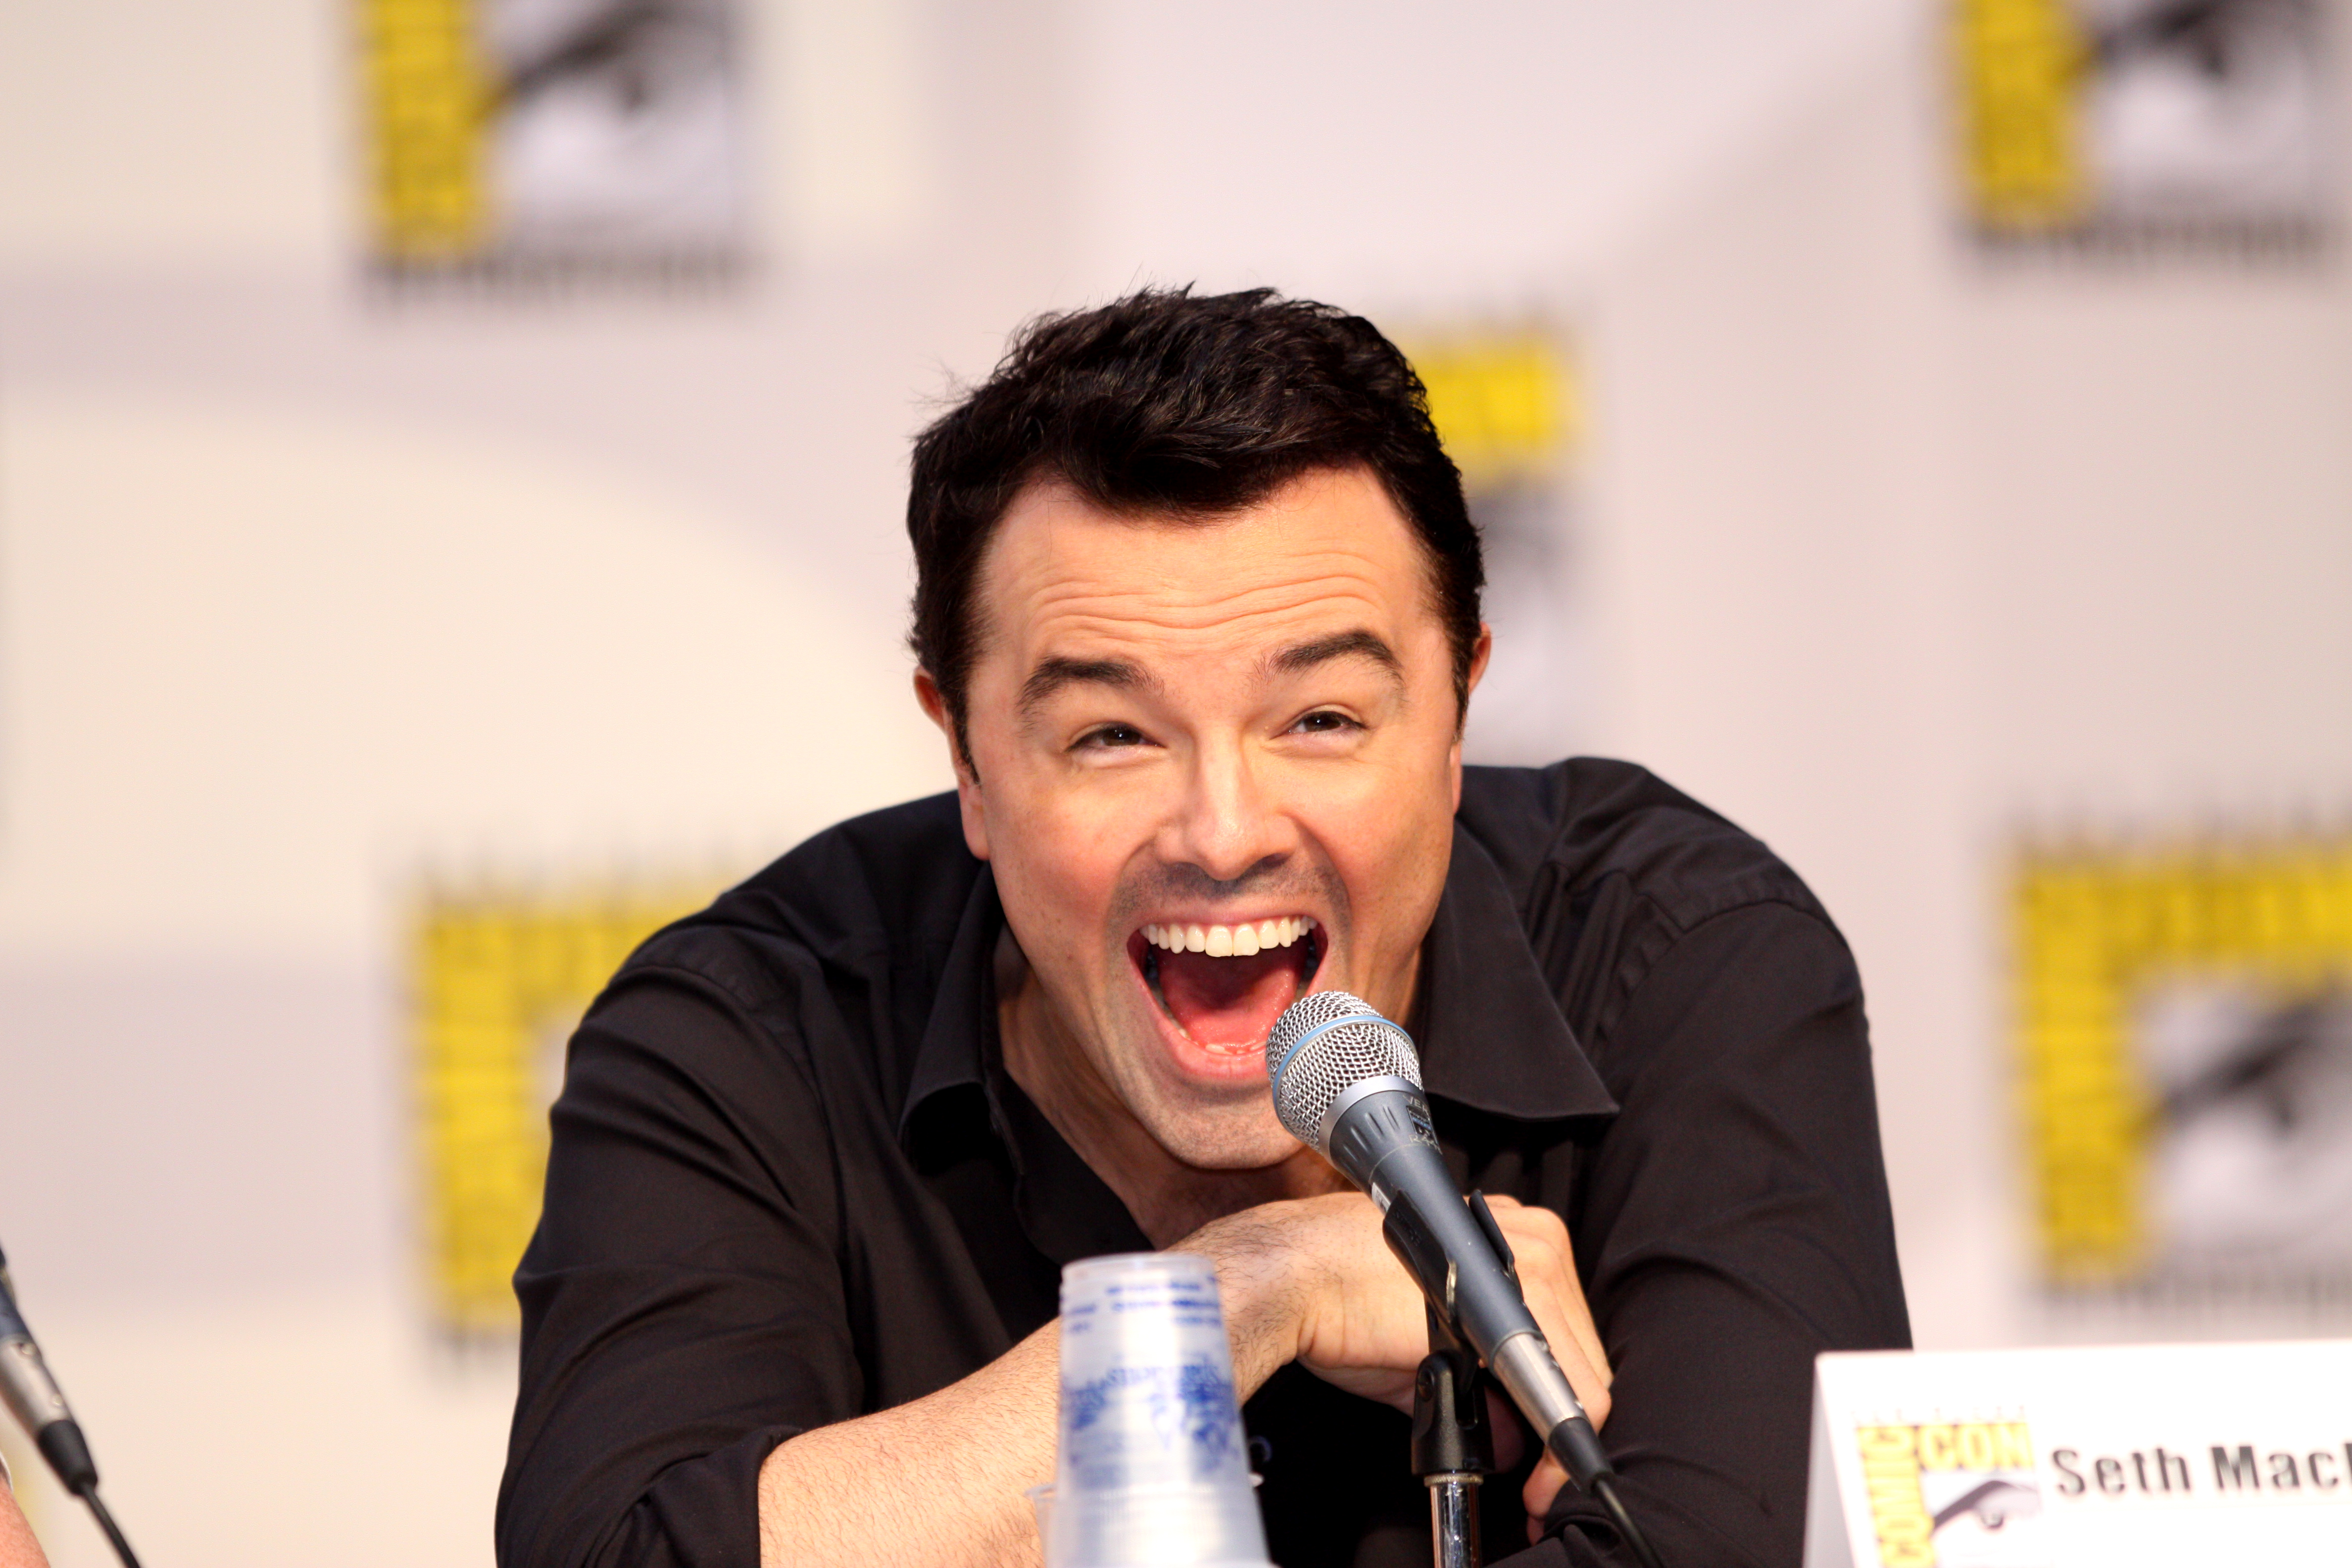 Comedian Seth MacFarlane answering questions at a press conference.